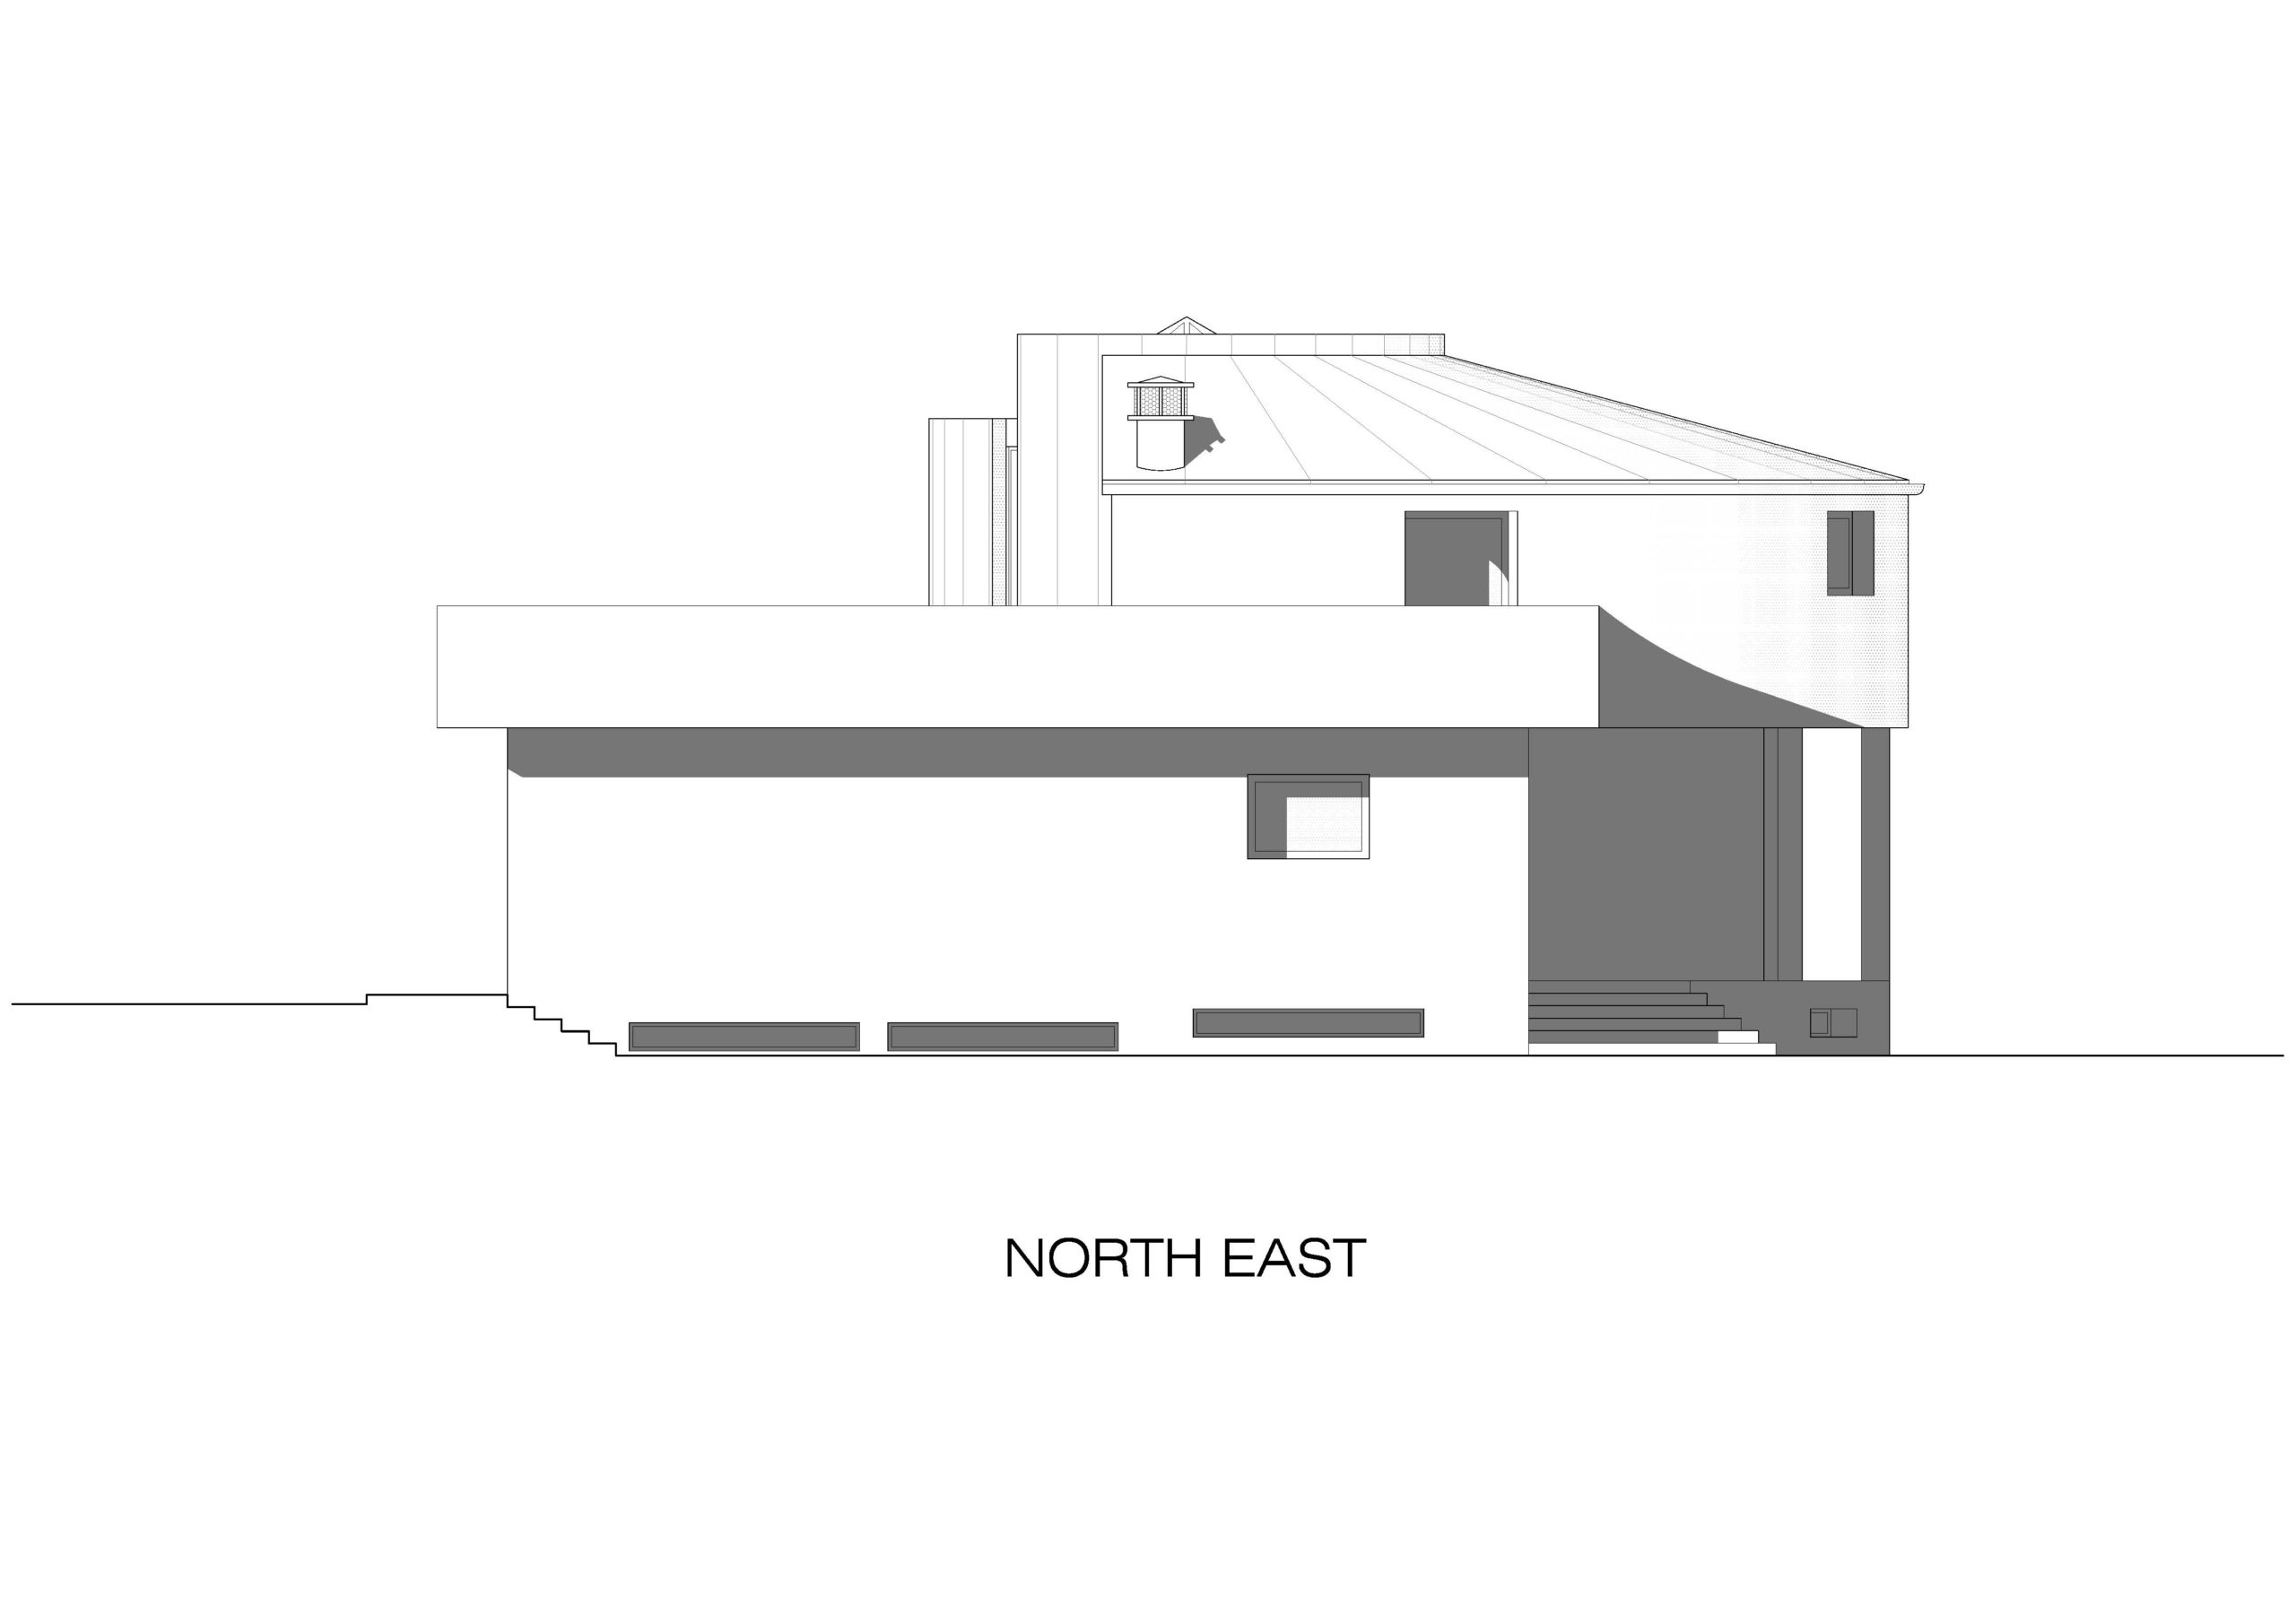 NORTH EAST